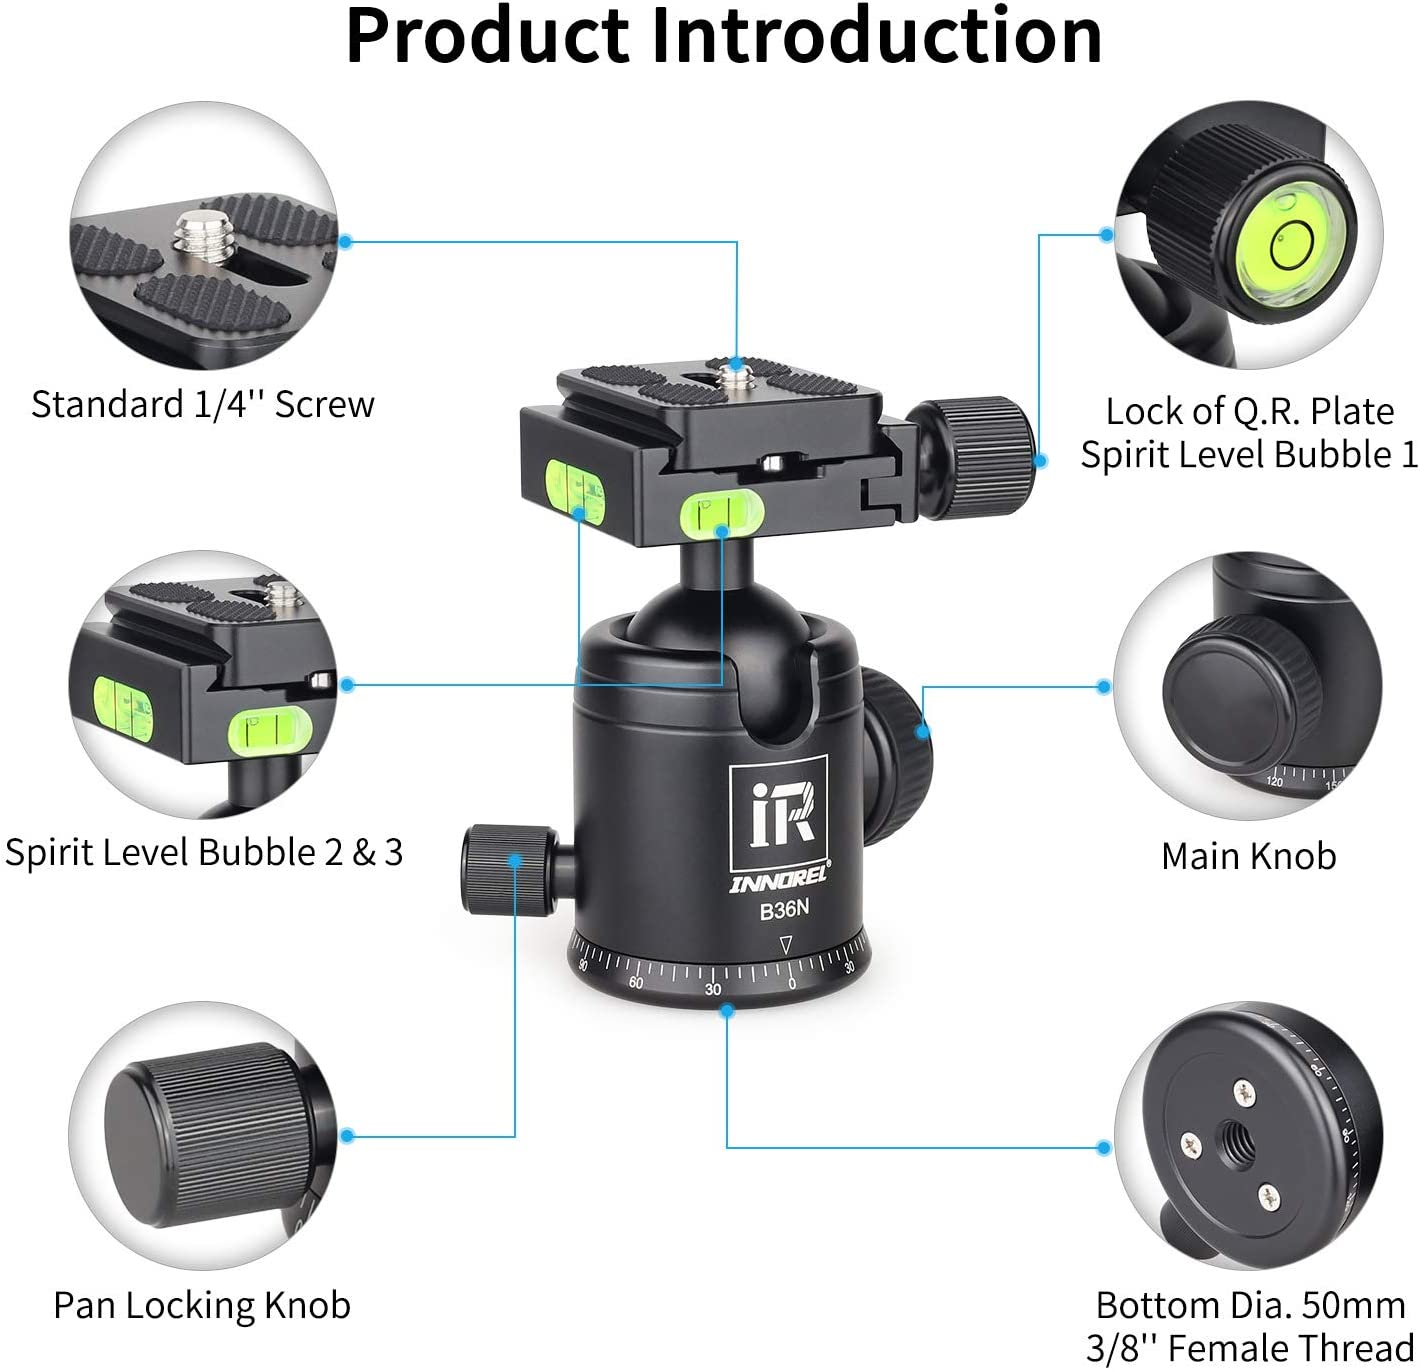 Low Profile Tripod Ball Head-INNOREL N36,Panoramic CNC Metal Camera Tripod Ball Head with Two 1//4 to 3//8 Screw Quick Release Plates for Tripod,Monopod,DSLR,Camcorder,Max Load 44lbs//20kg